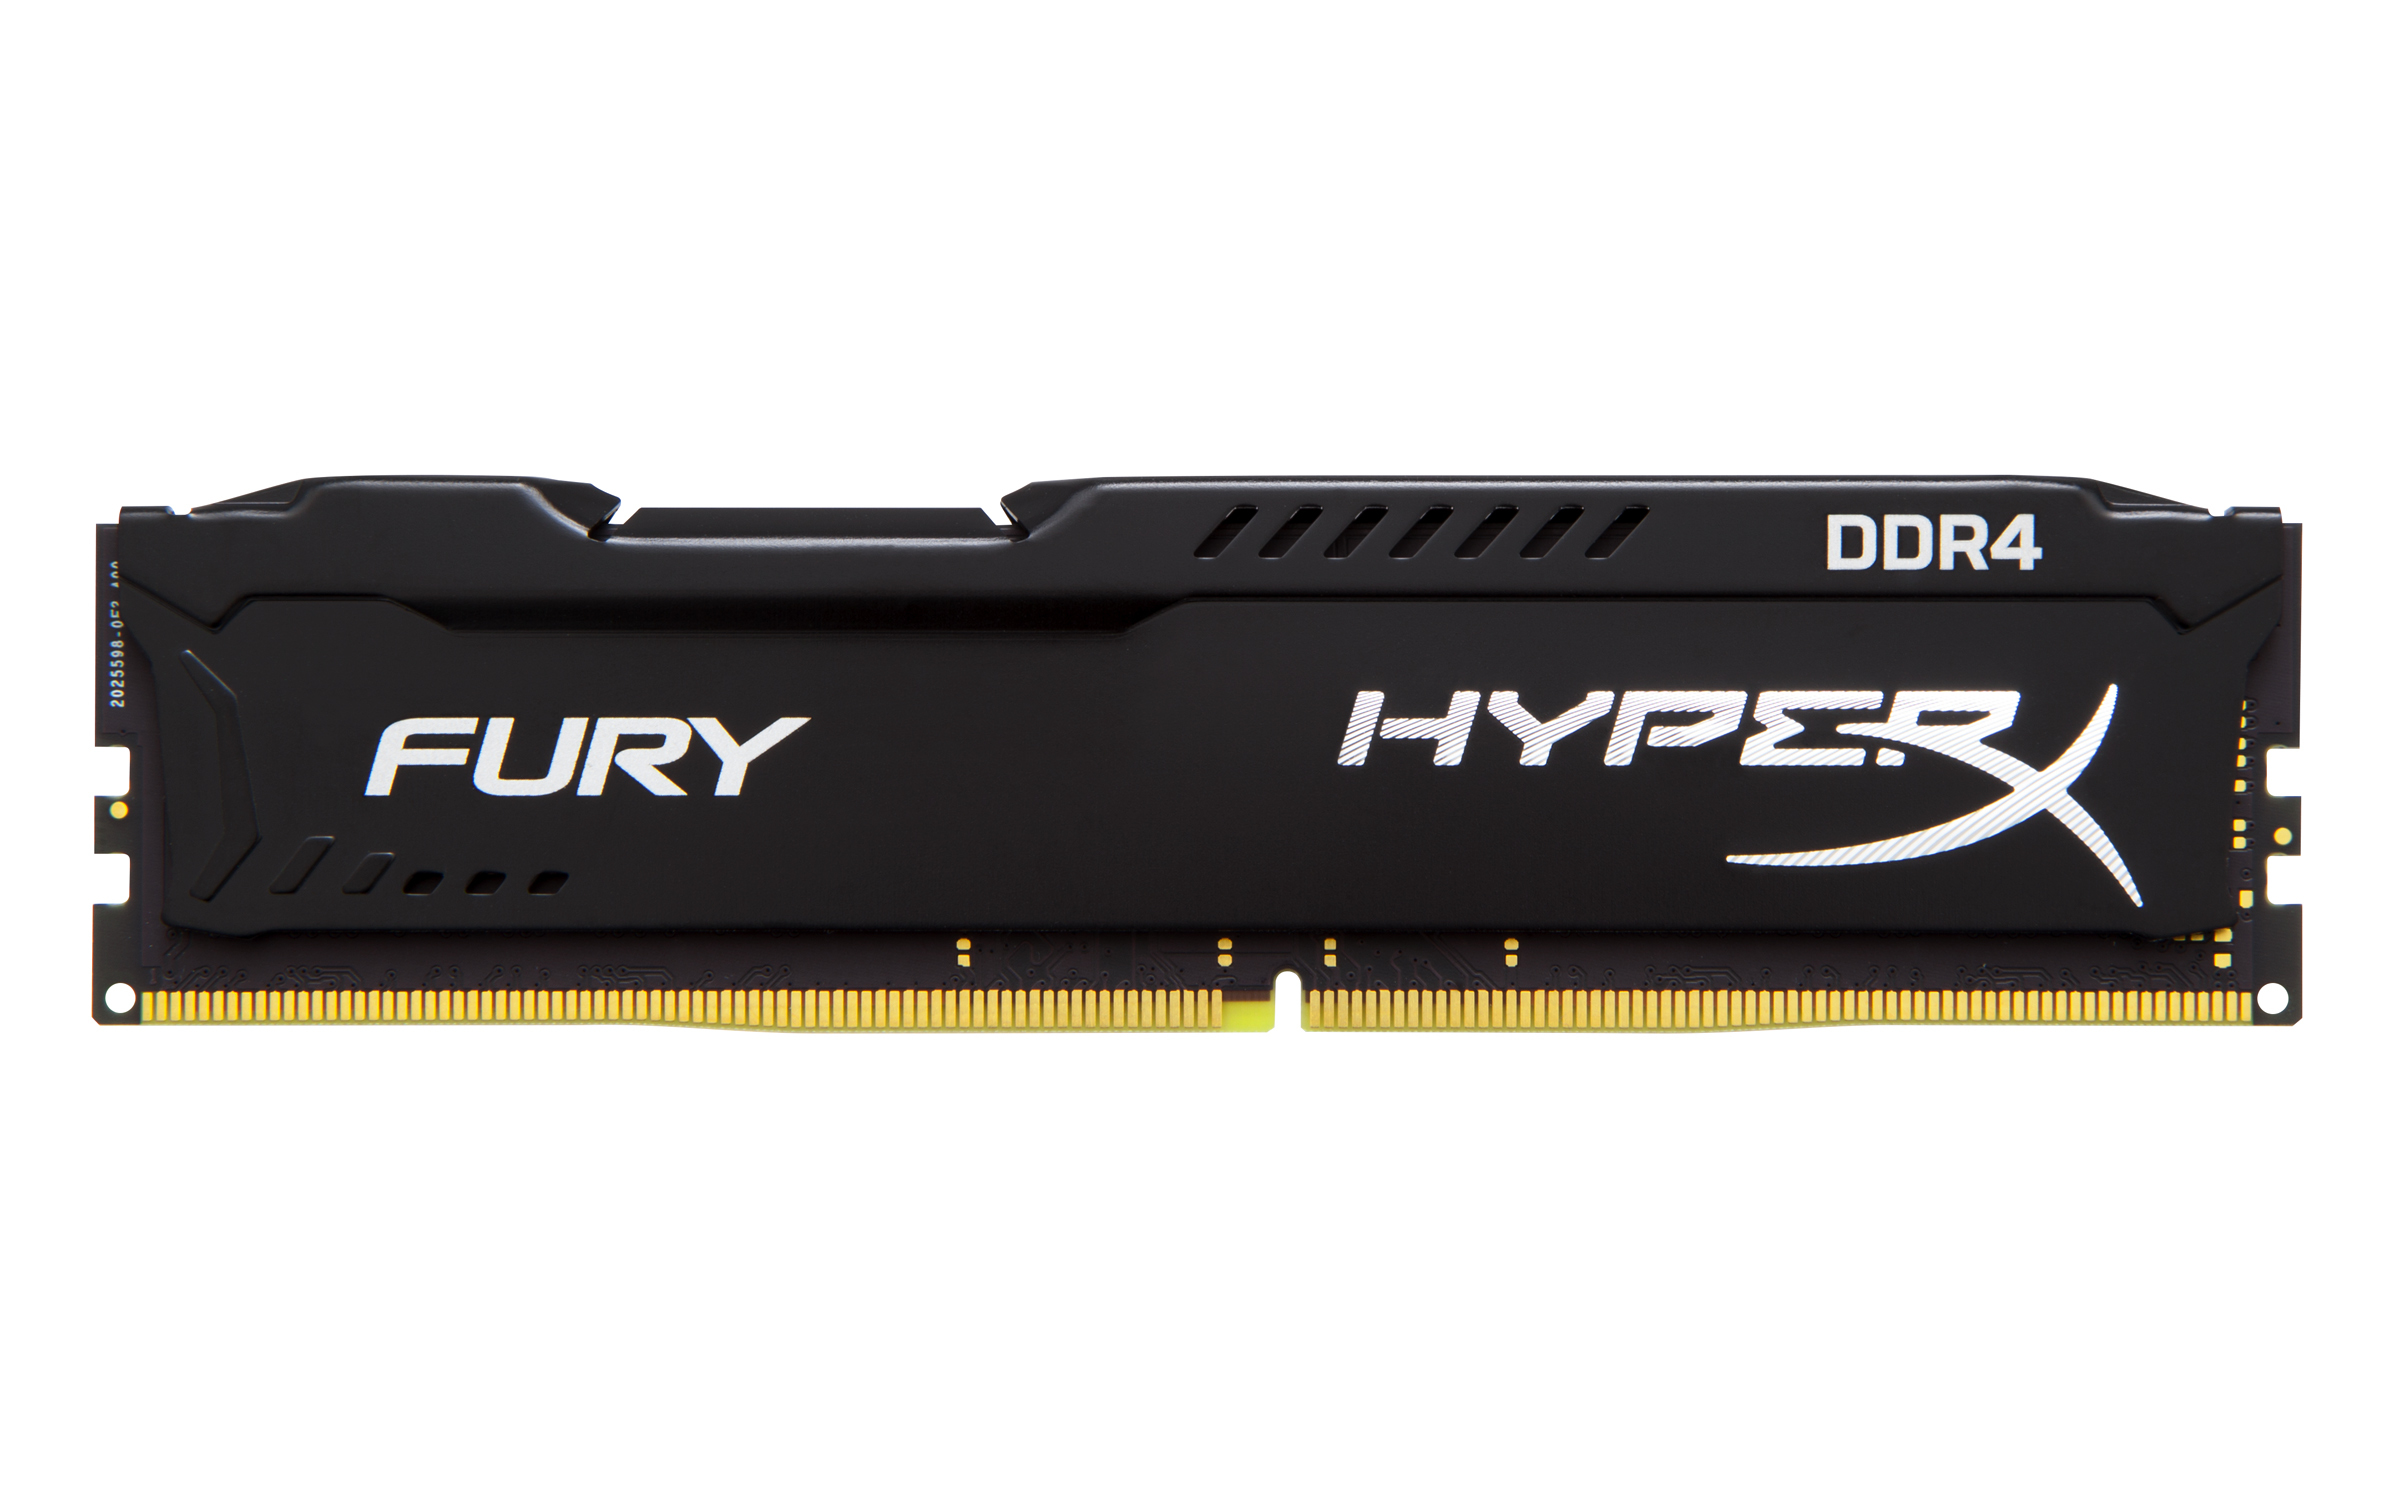 Ram Kingston 8GB 2800Mhz DDR4 CL14 DIMM Savage HyperX